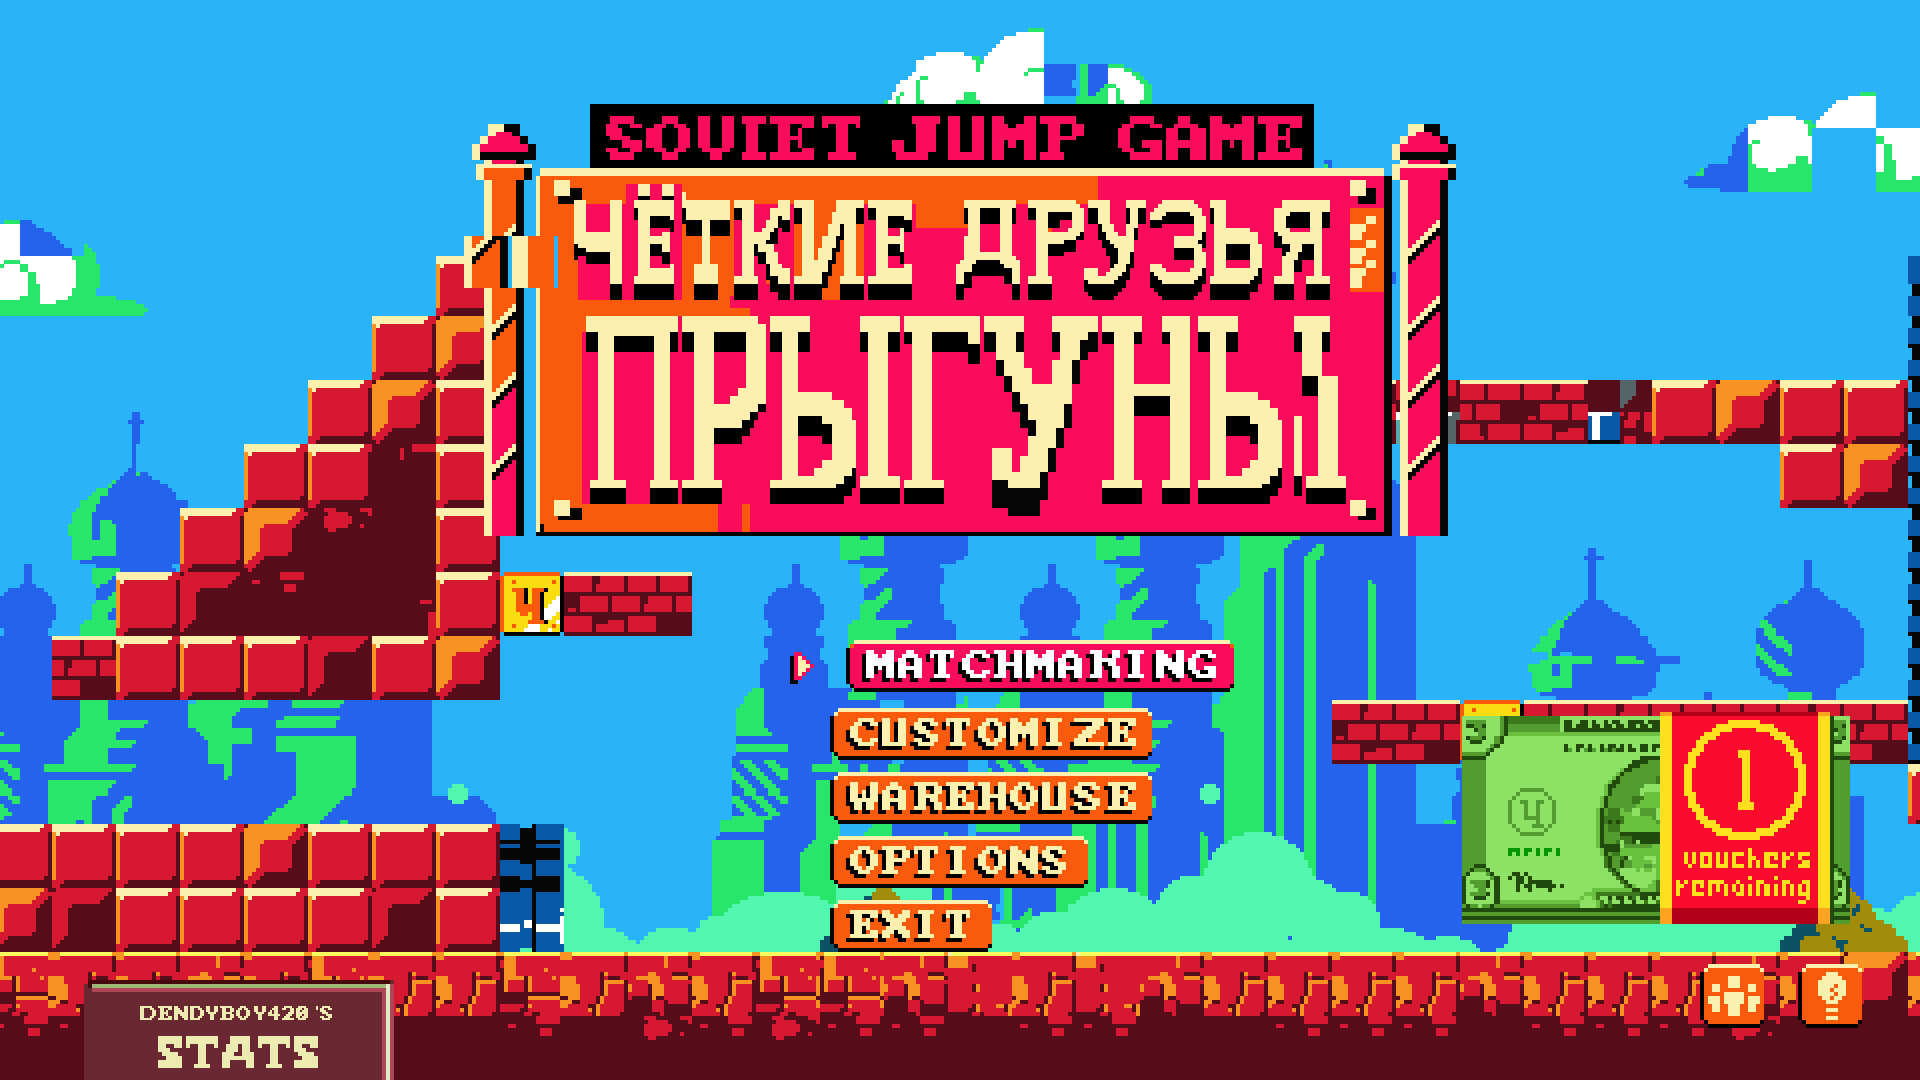 Soviet Jump Game screenshot